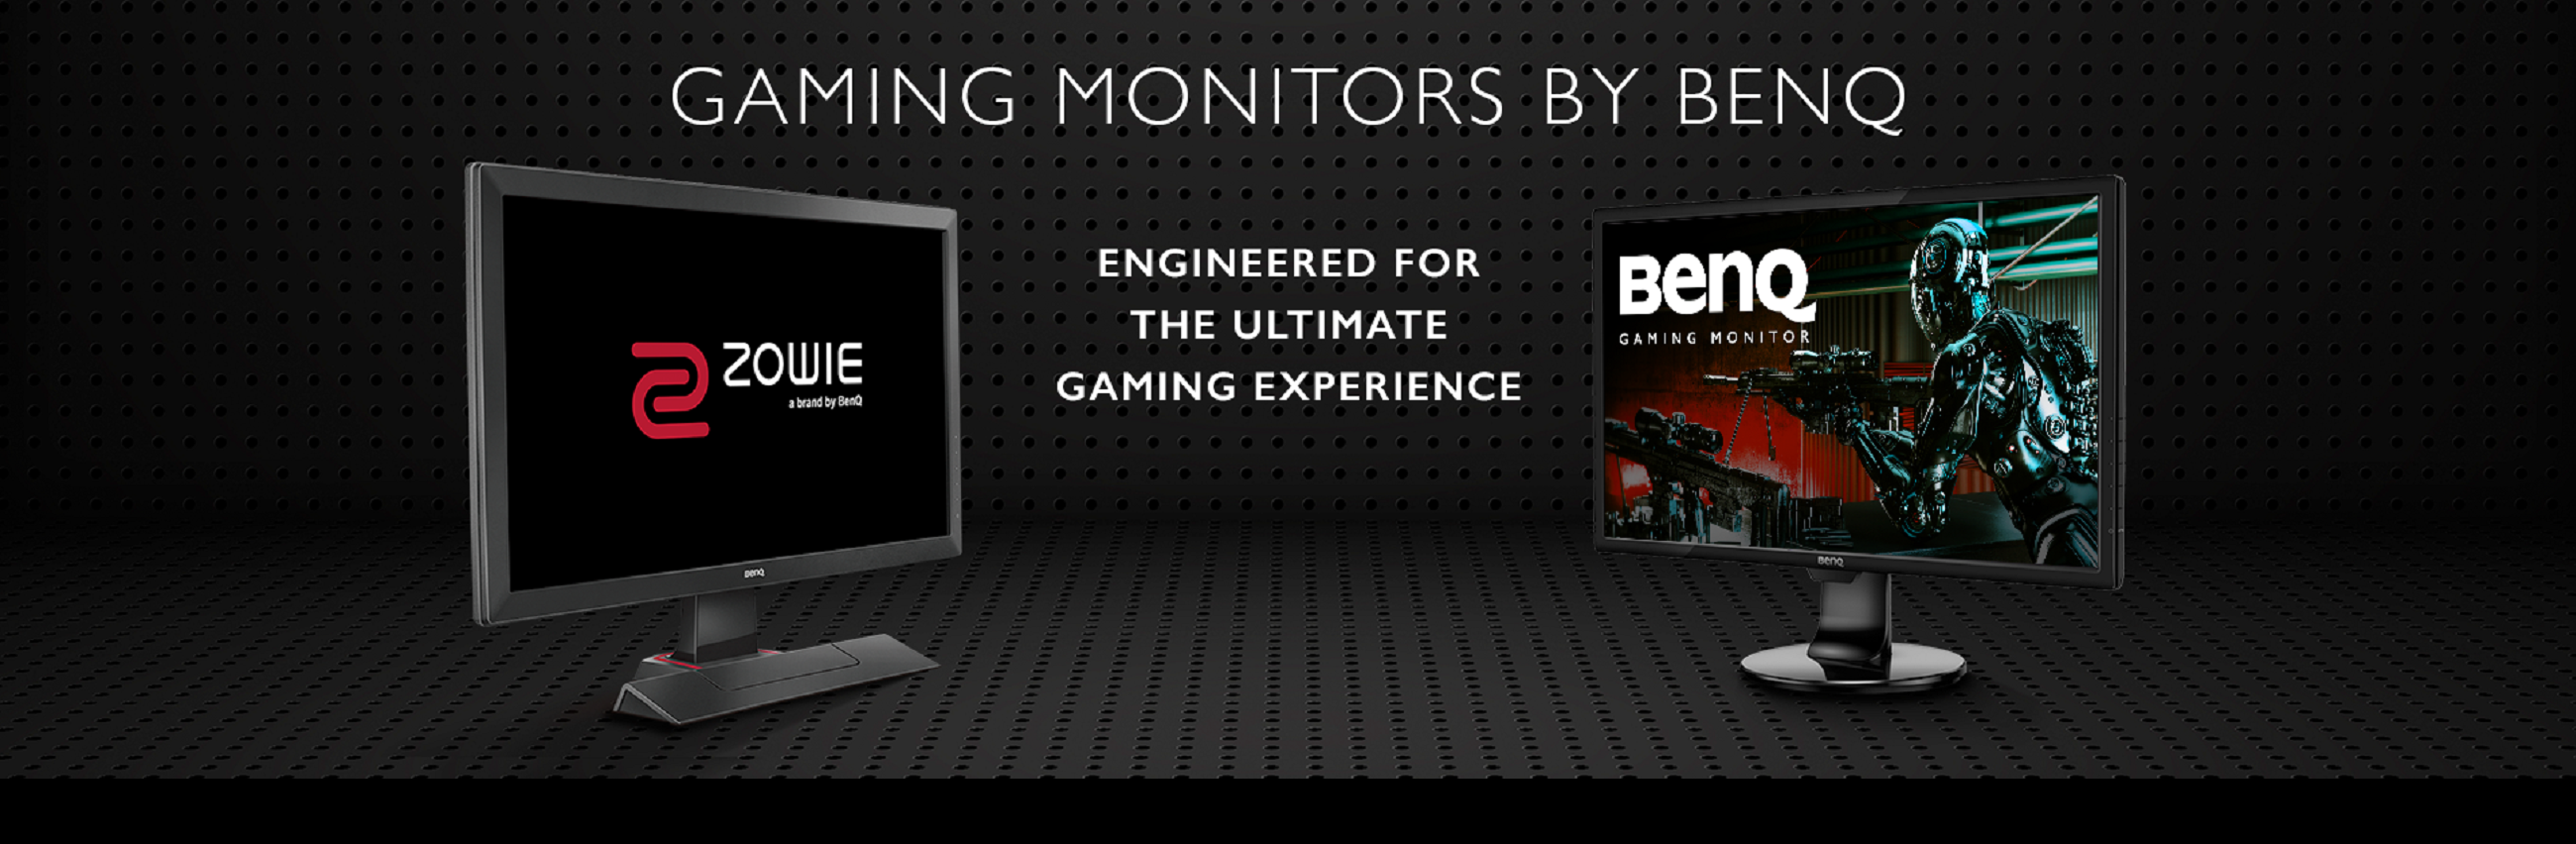 BenQ Gaming Monitors